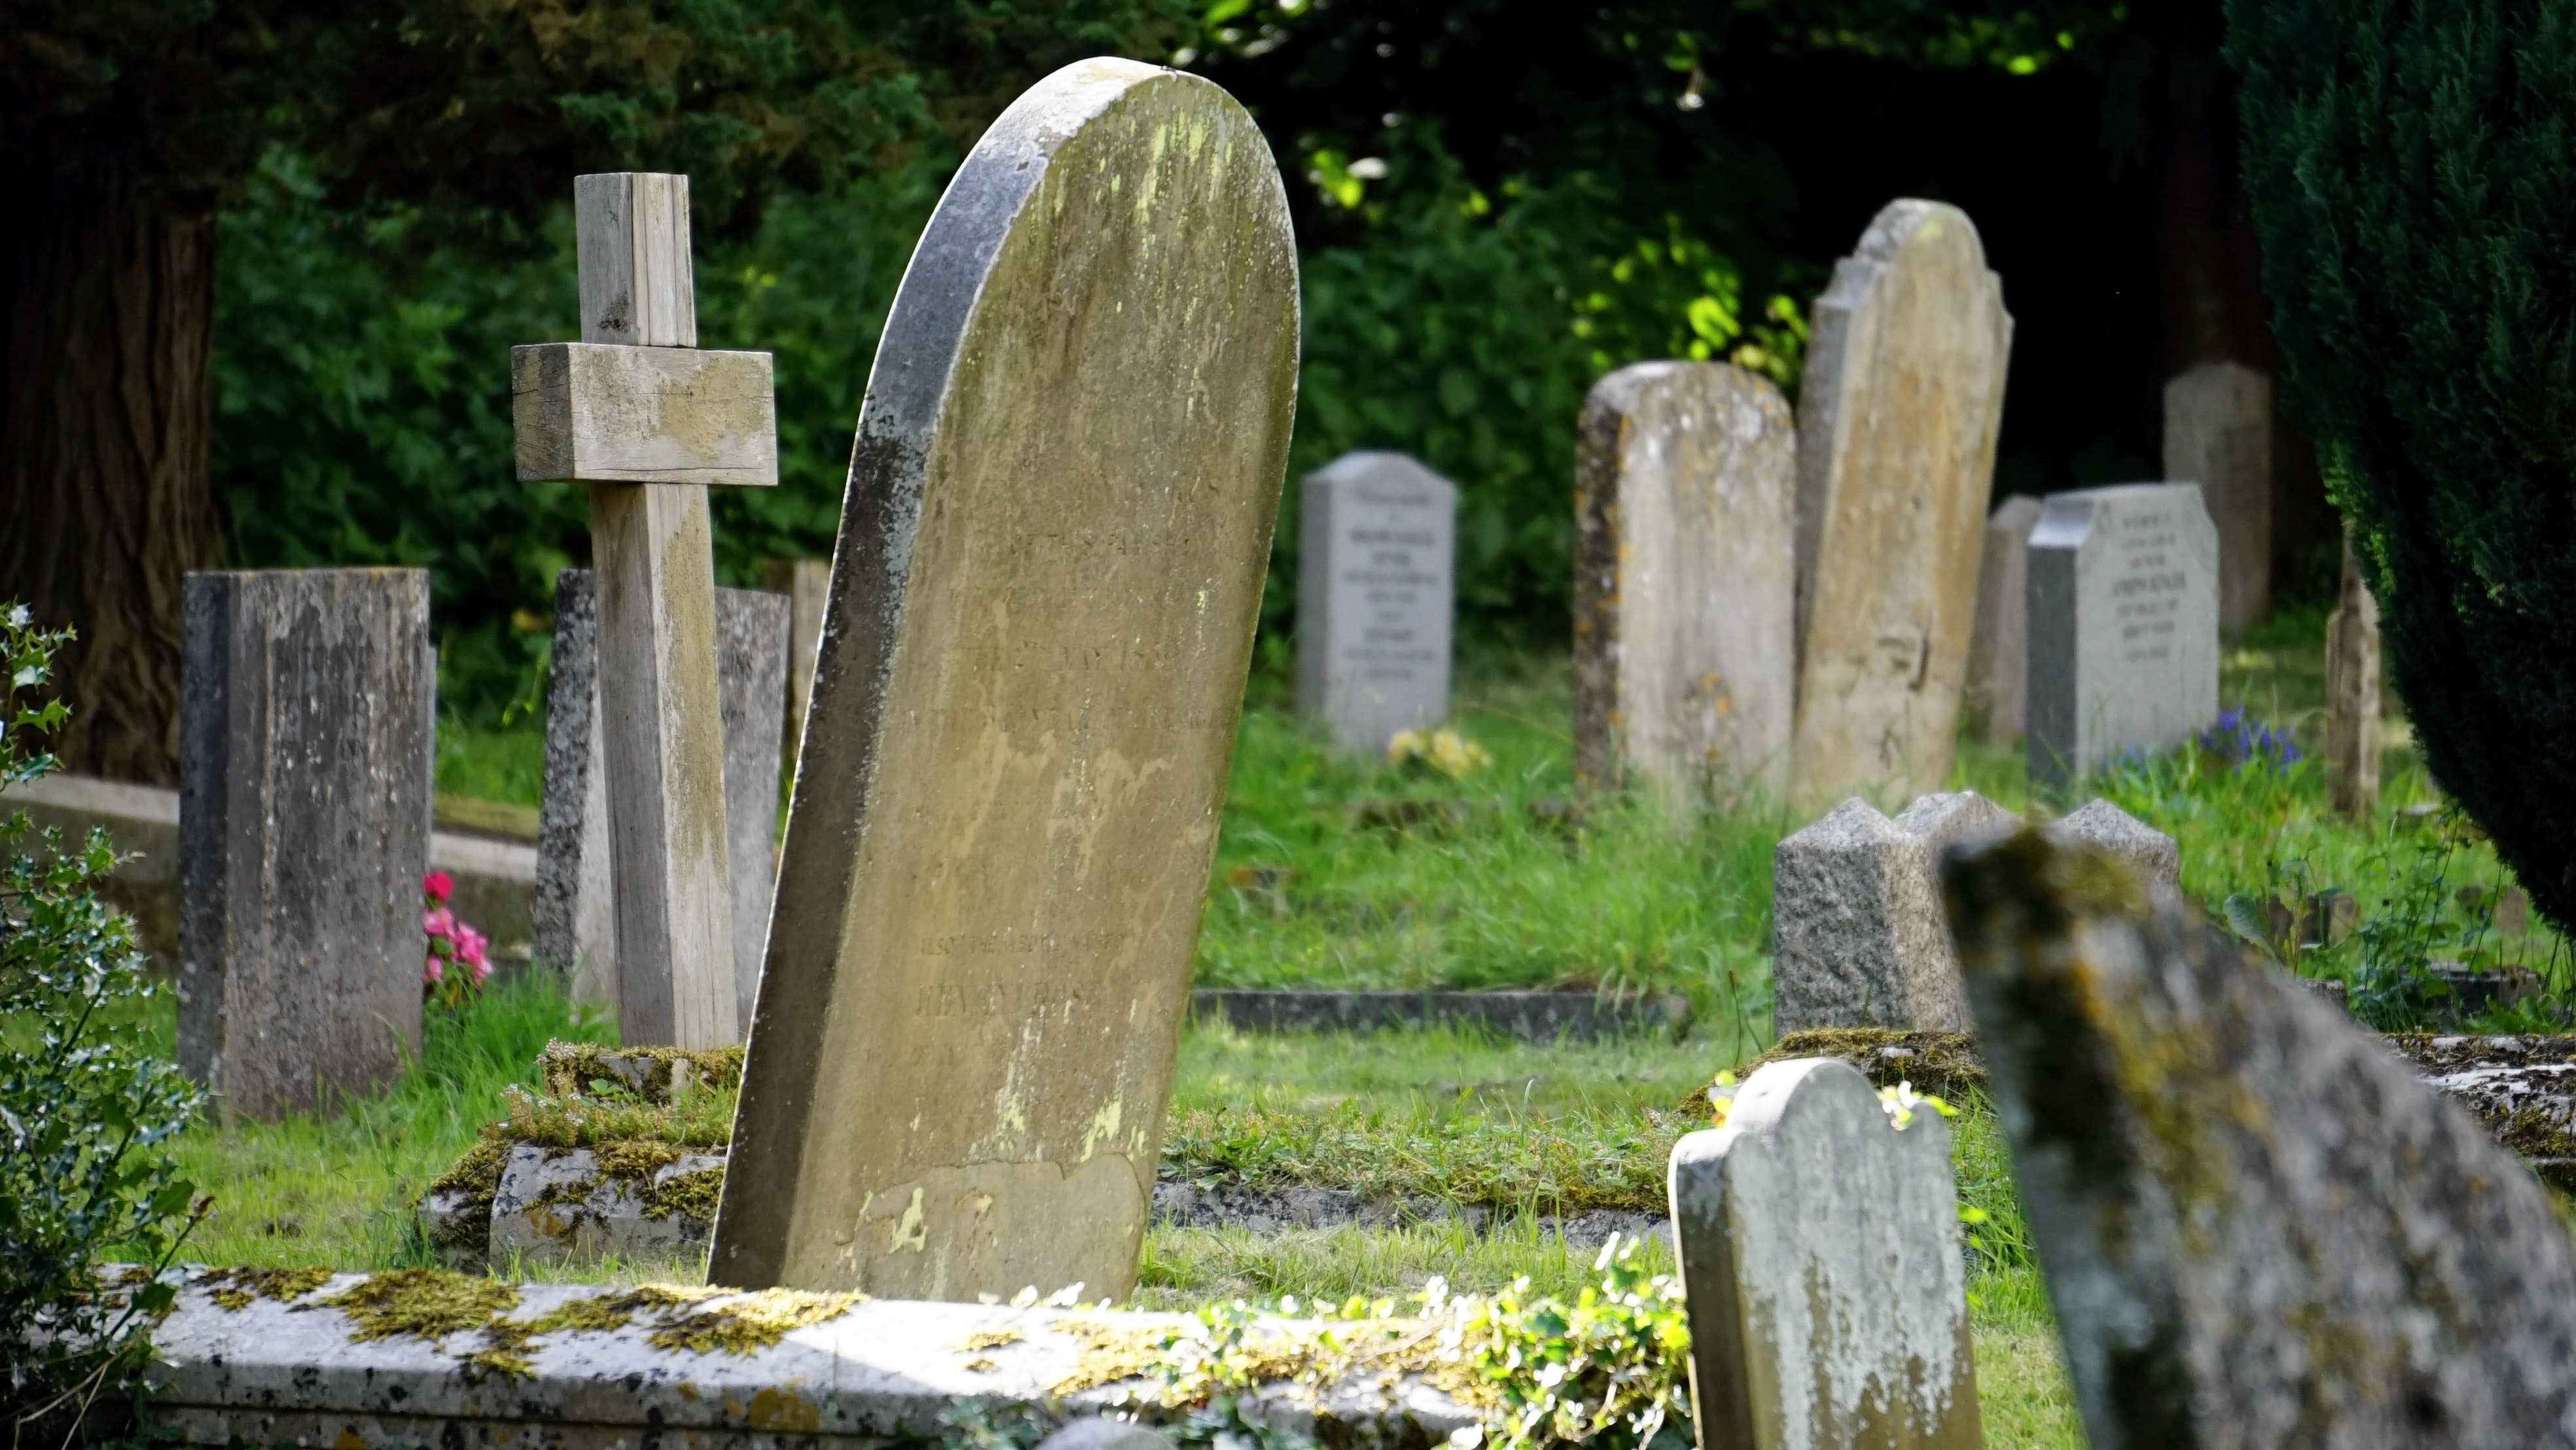 Overcrowded Traditional Grave Site